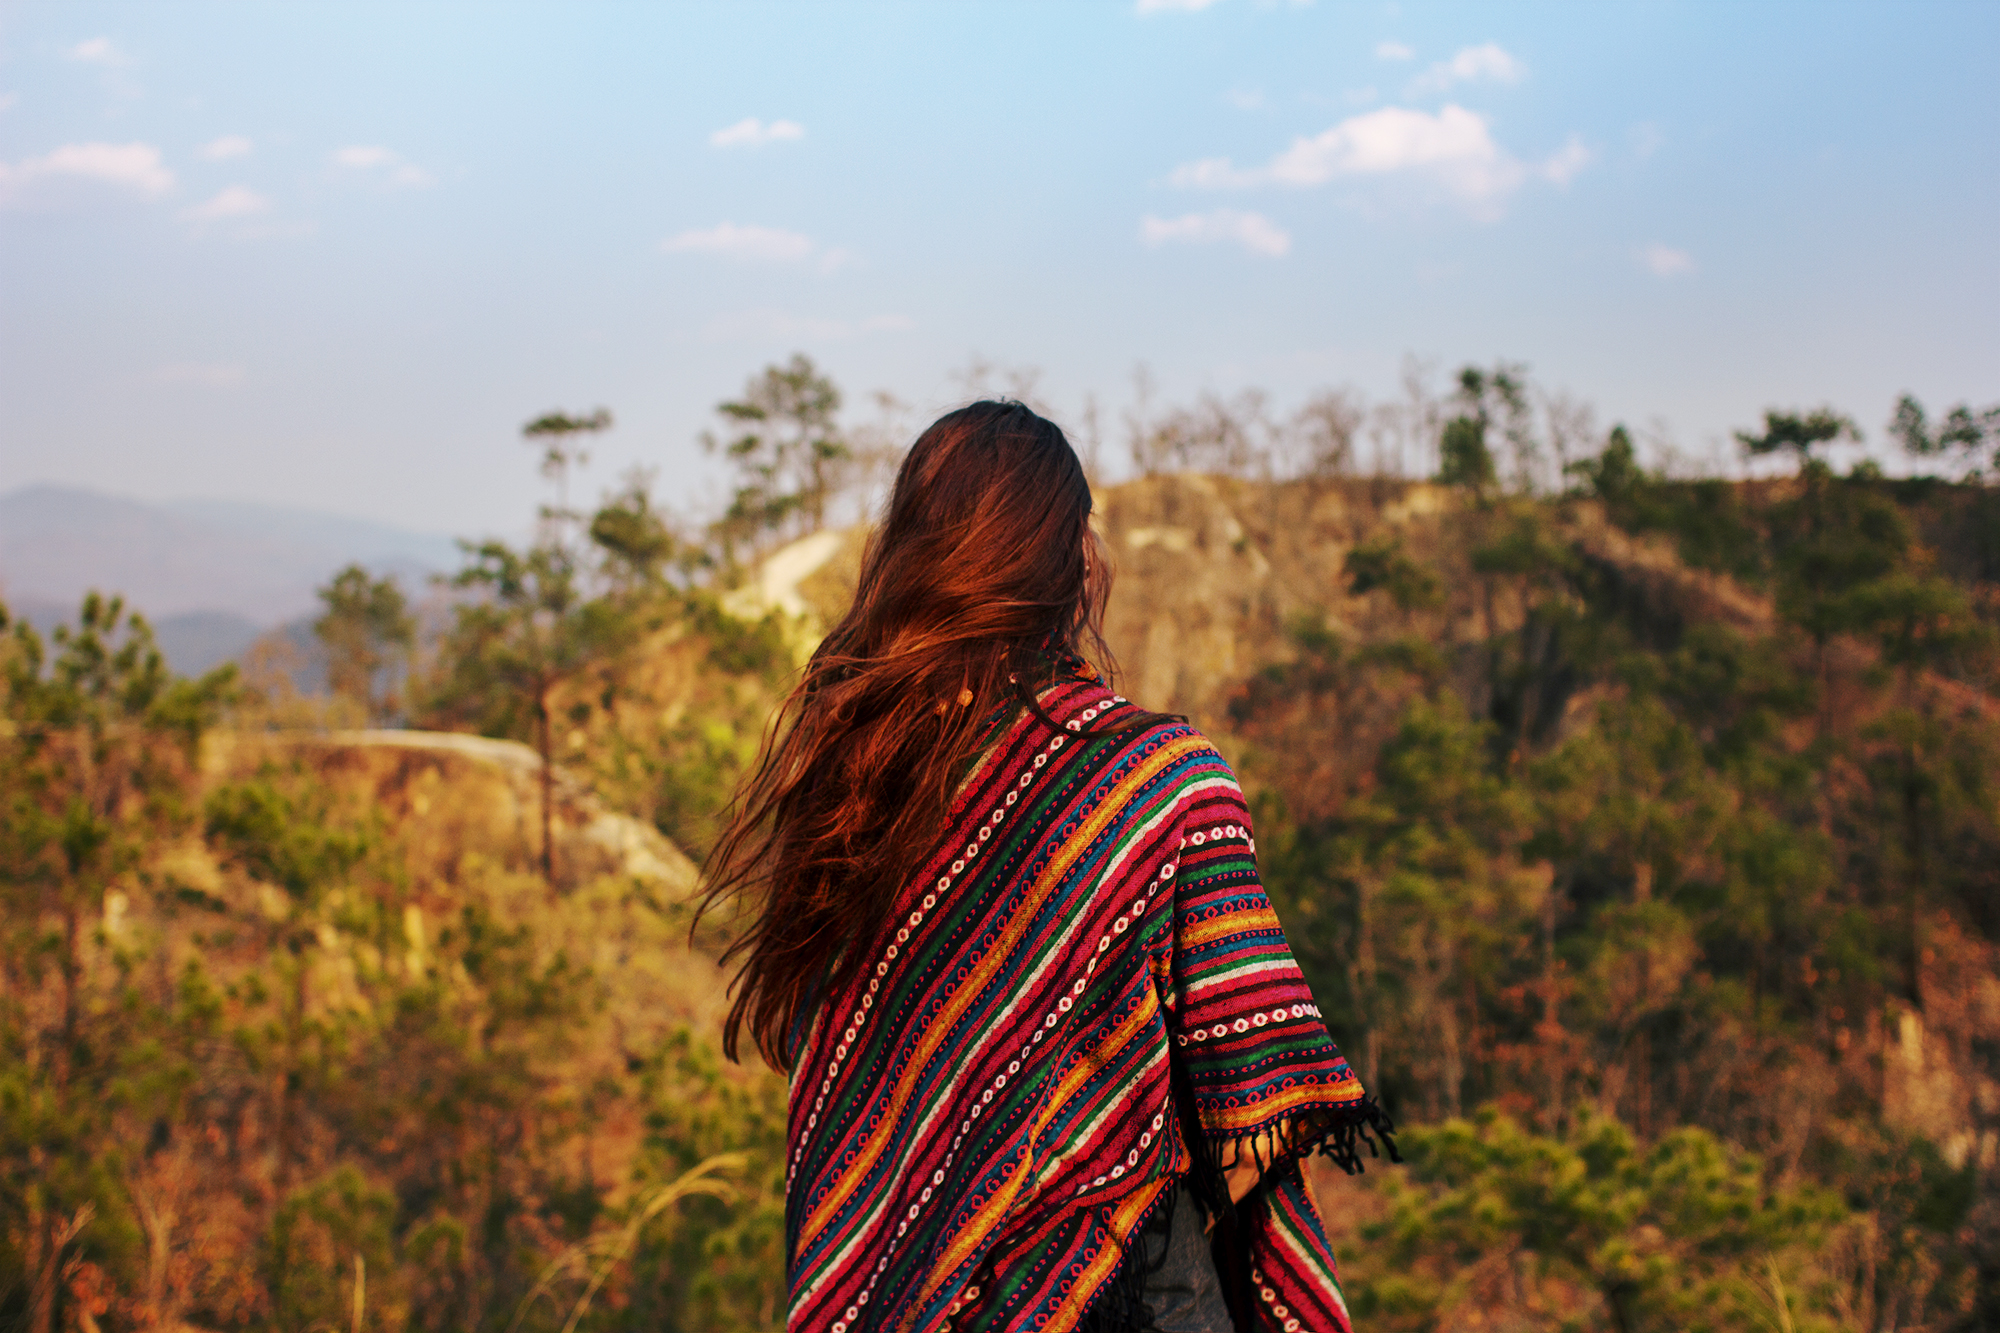 A young woman with long hair wearing a colorful poncho standing in a beautiful Thai landscape.